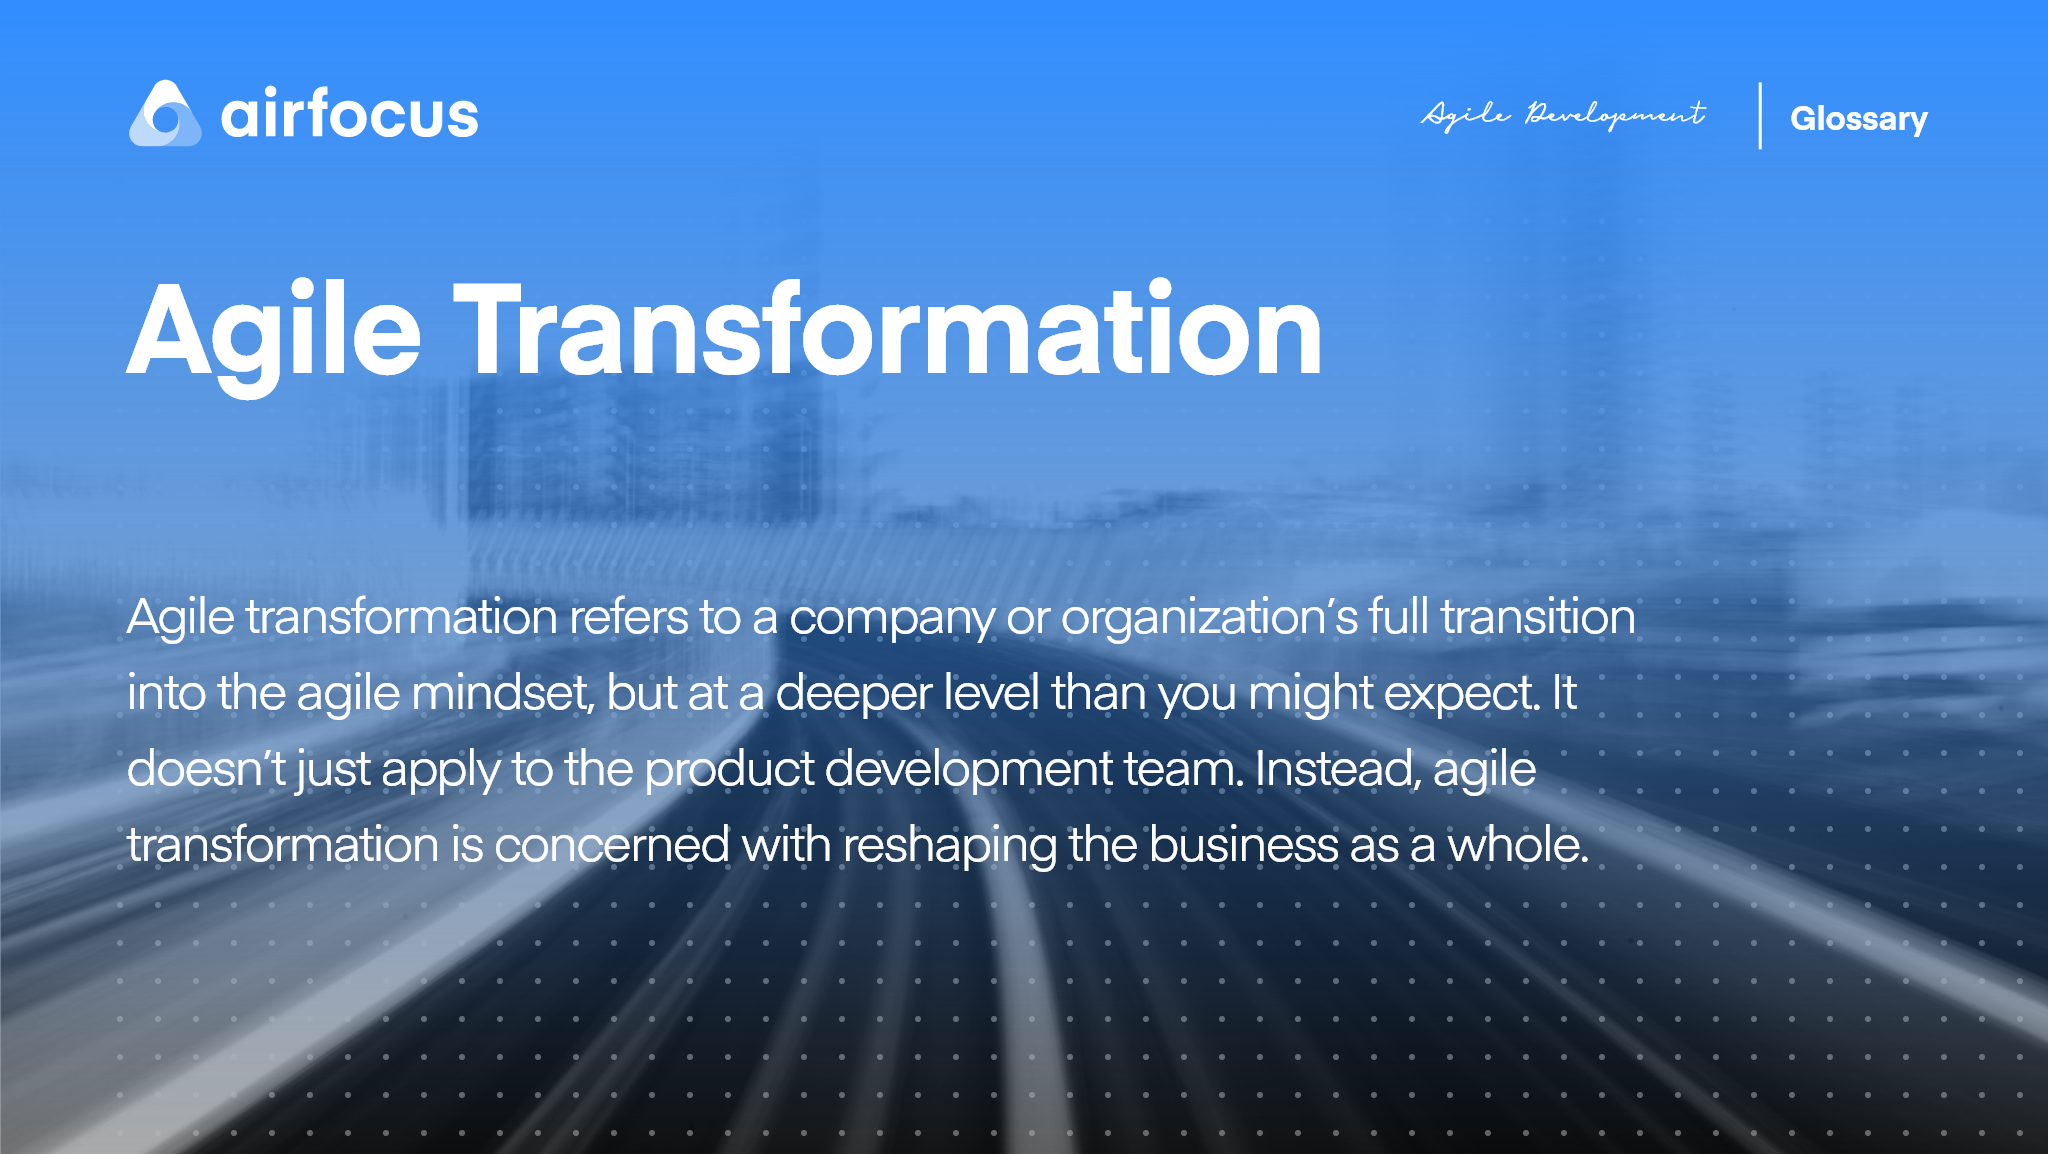 What Is Agile Transformation